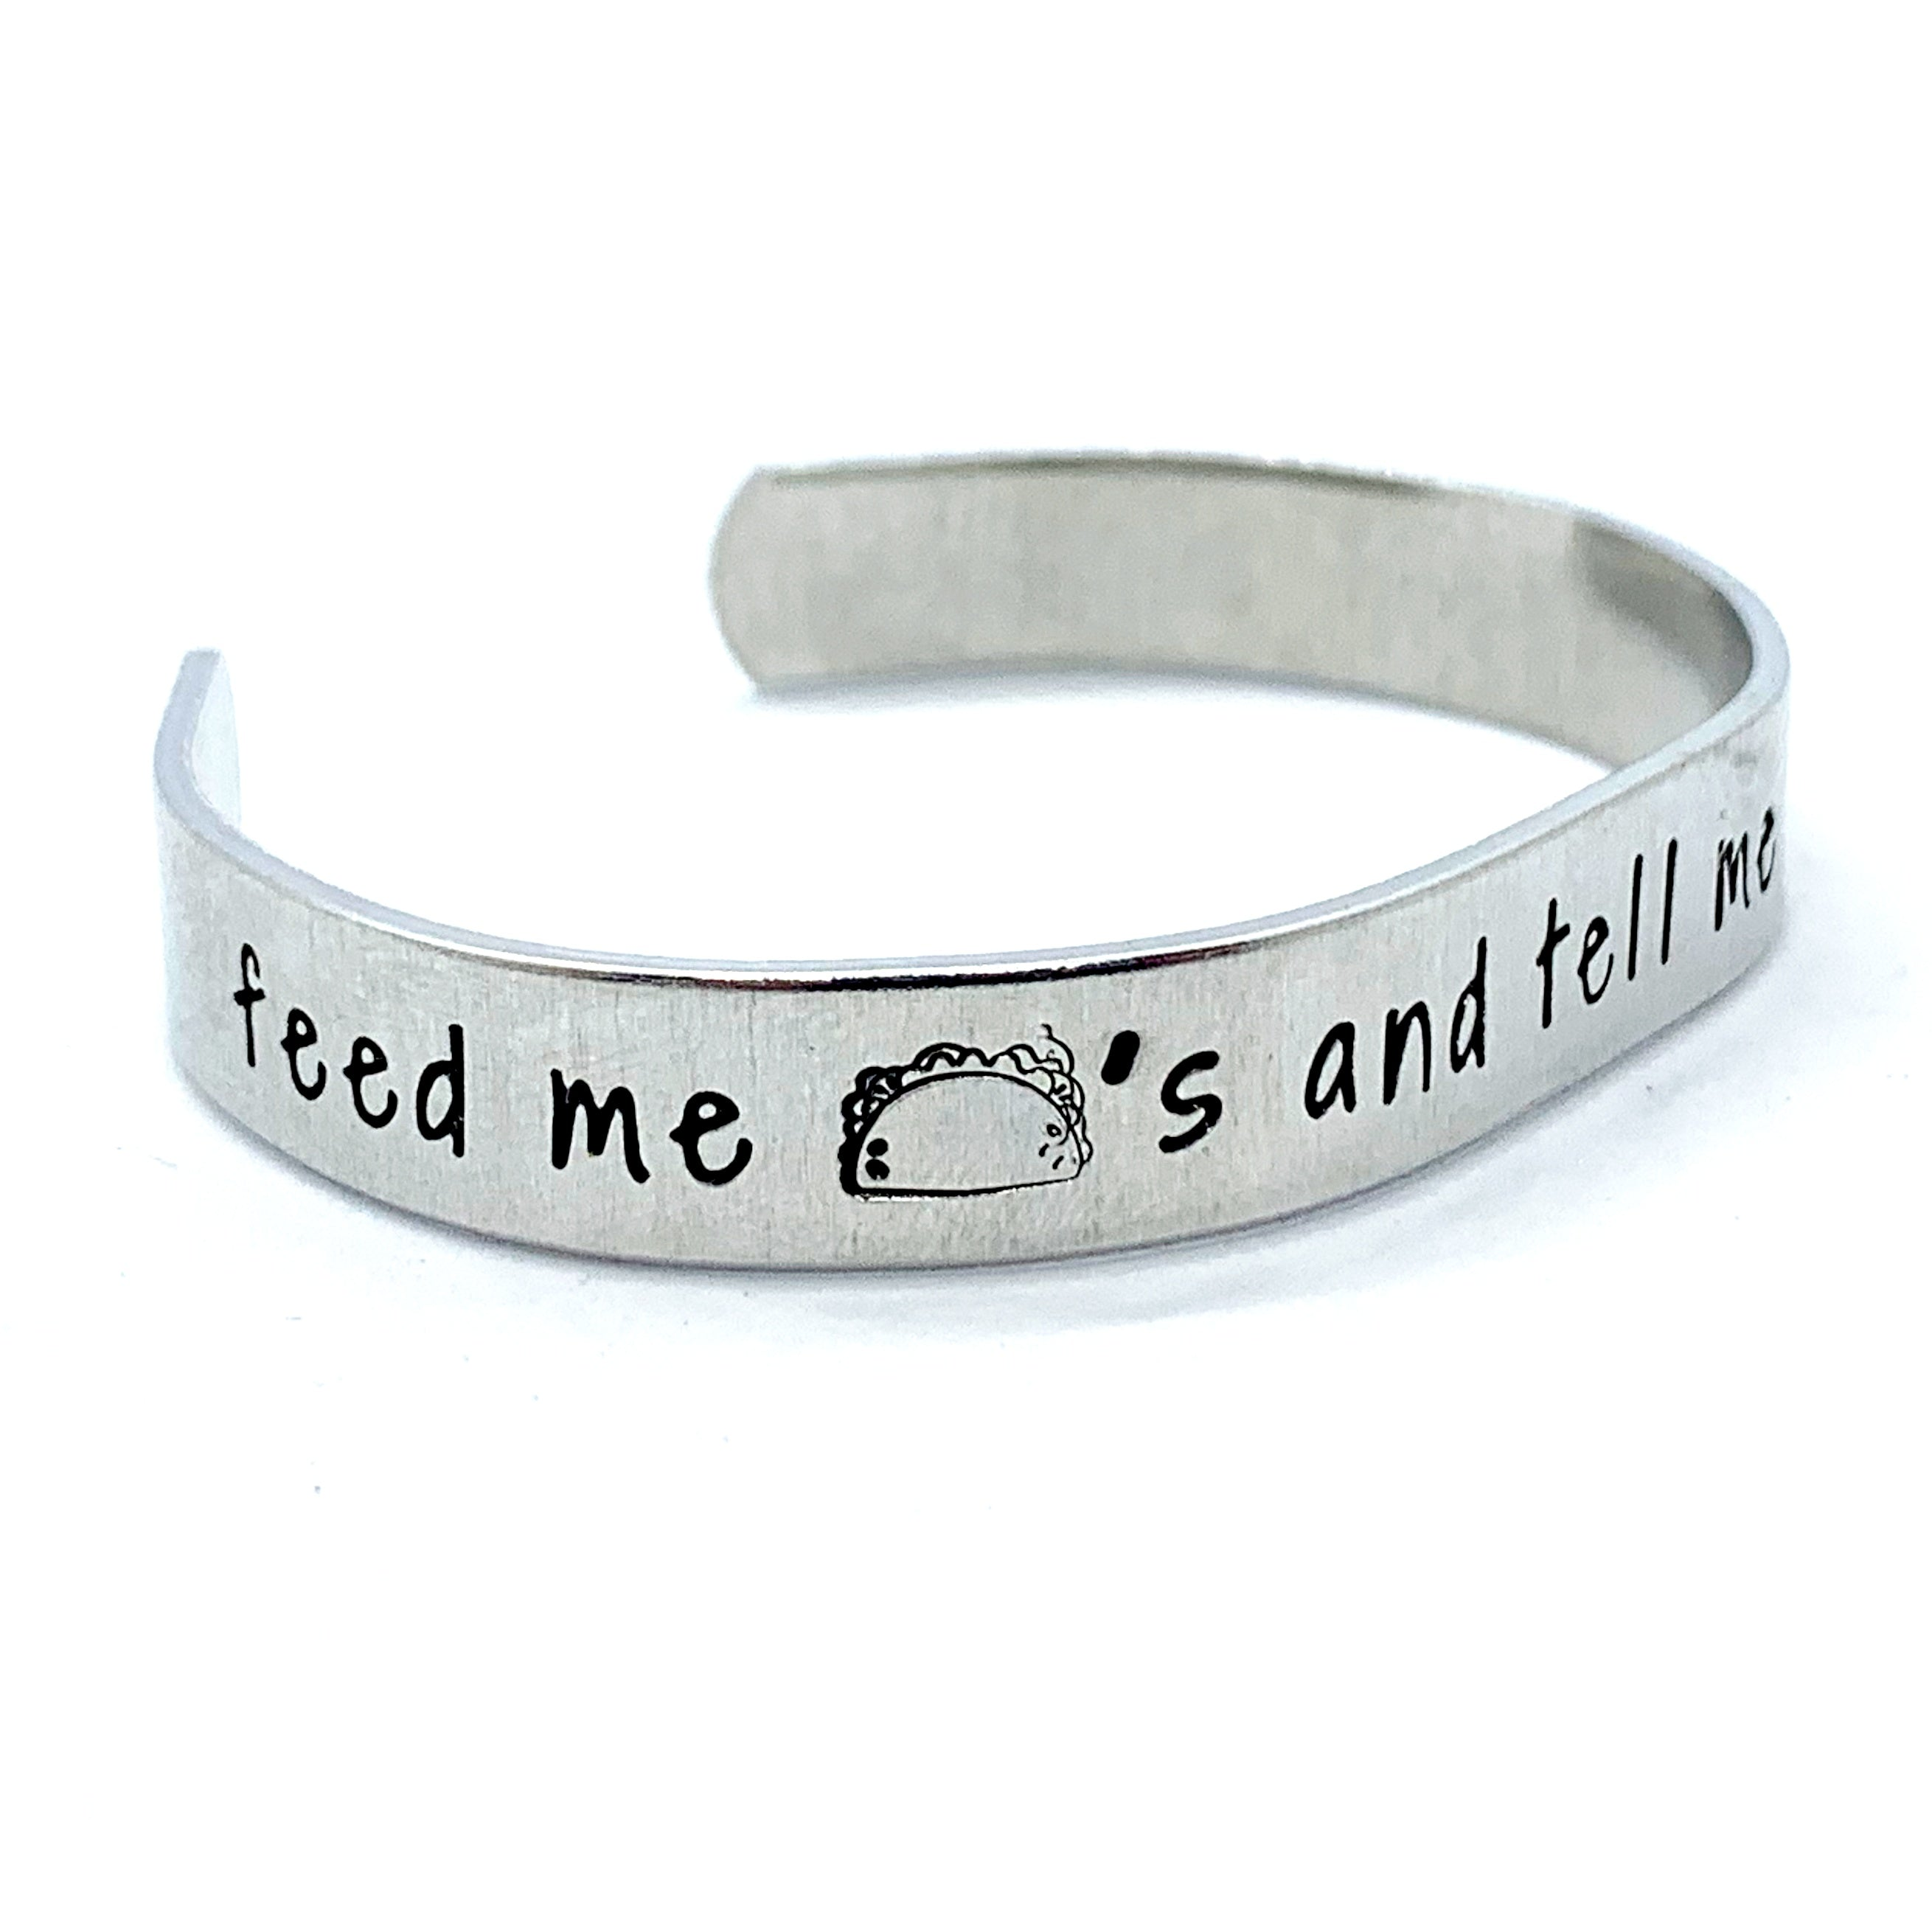 ⅜ inch Aluminum Cuff - Feed Me Tacos And Tell Me I'm Pretty